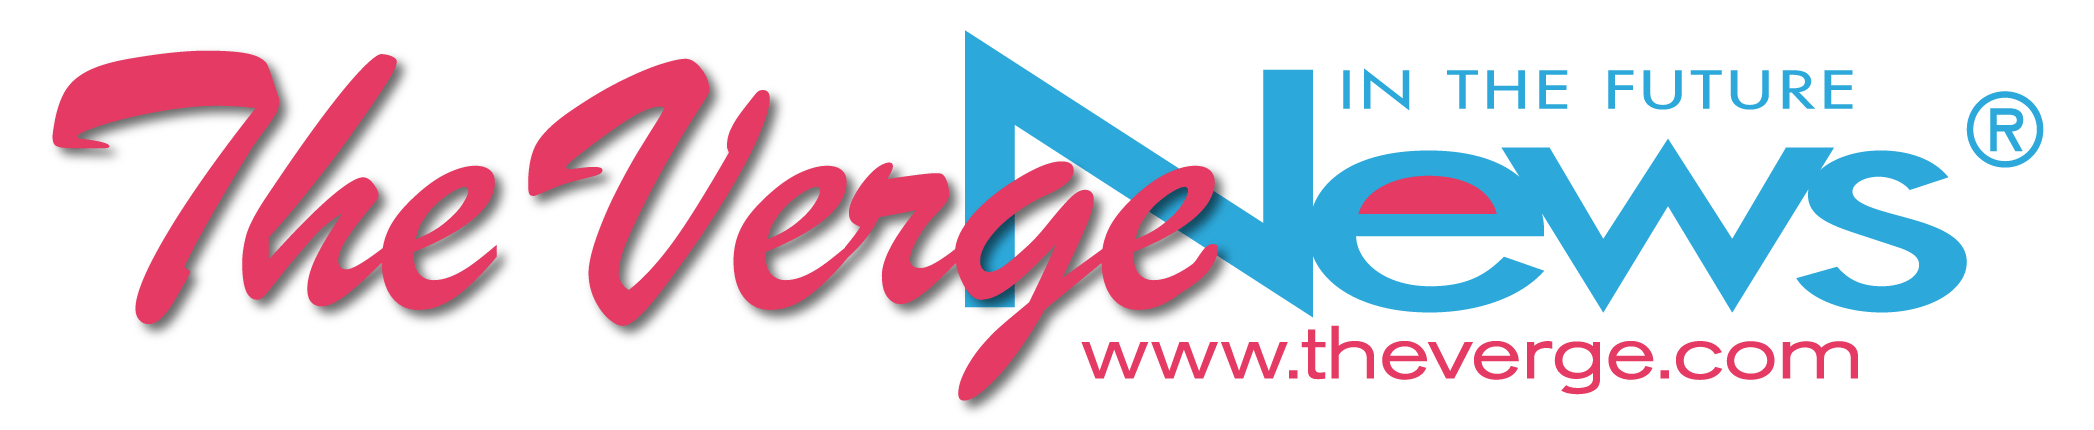 verge-gossip-lainey-logo